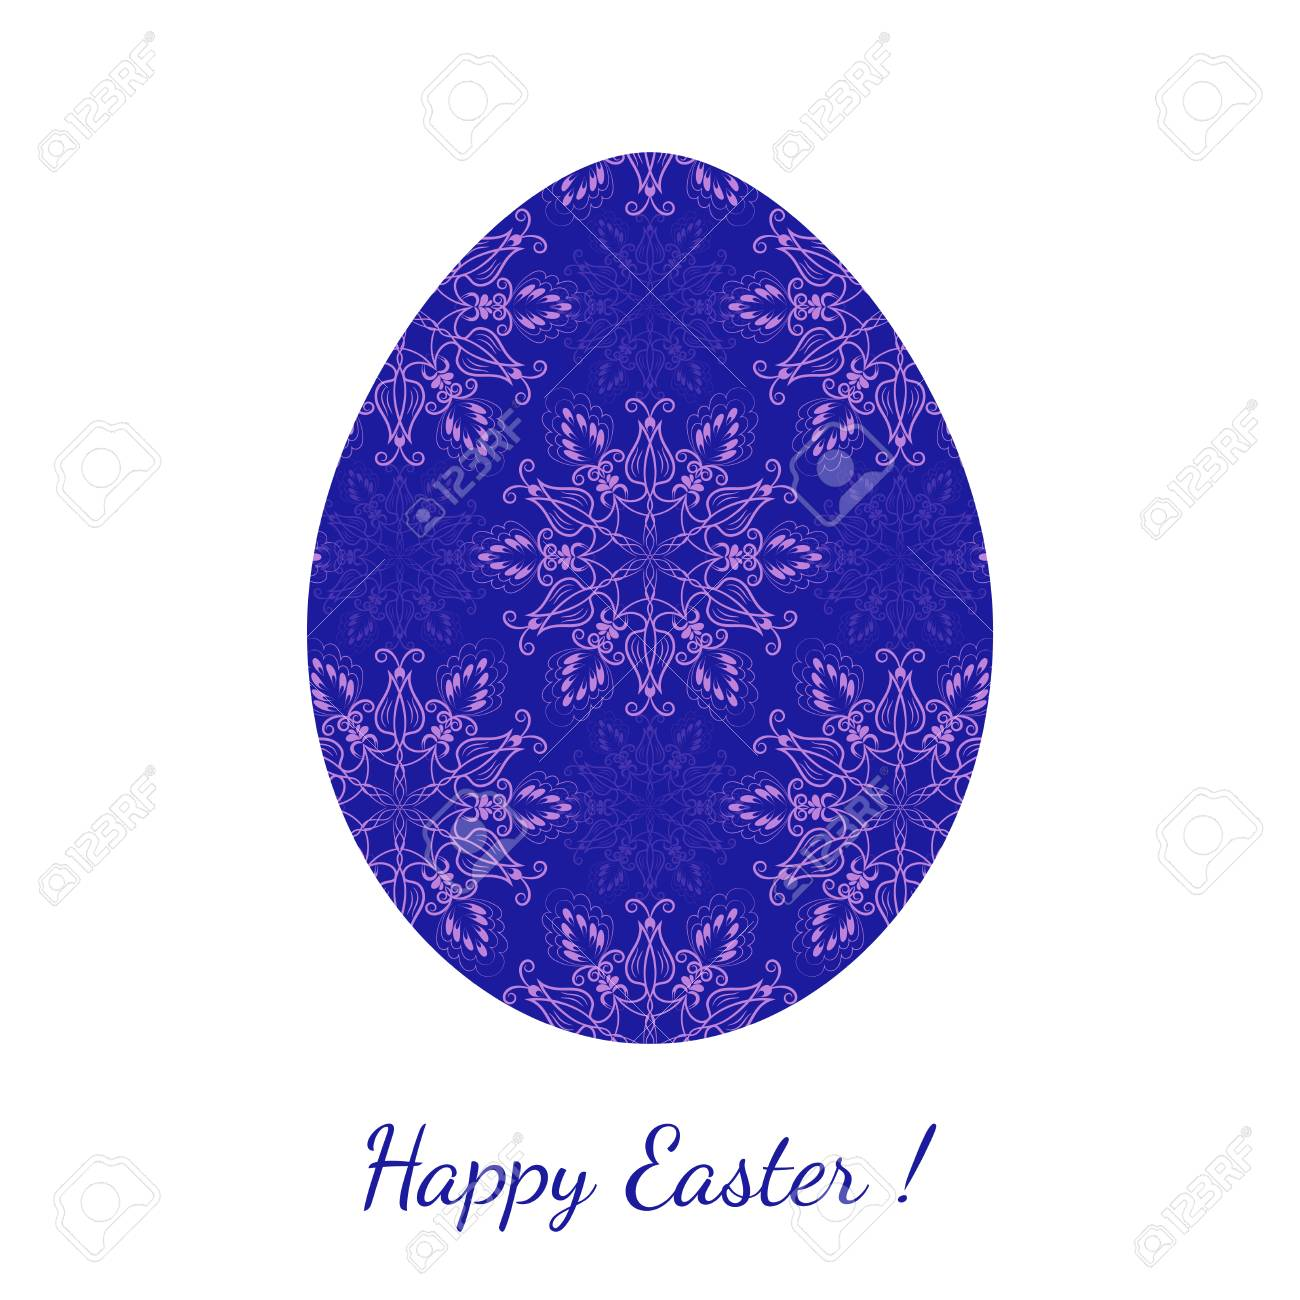 Easter Egg Decorated With A Blue Floral Seamless Ornament With.